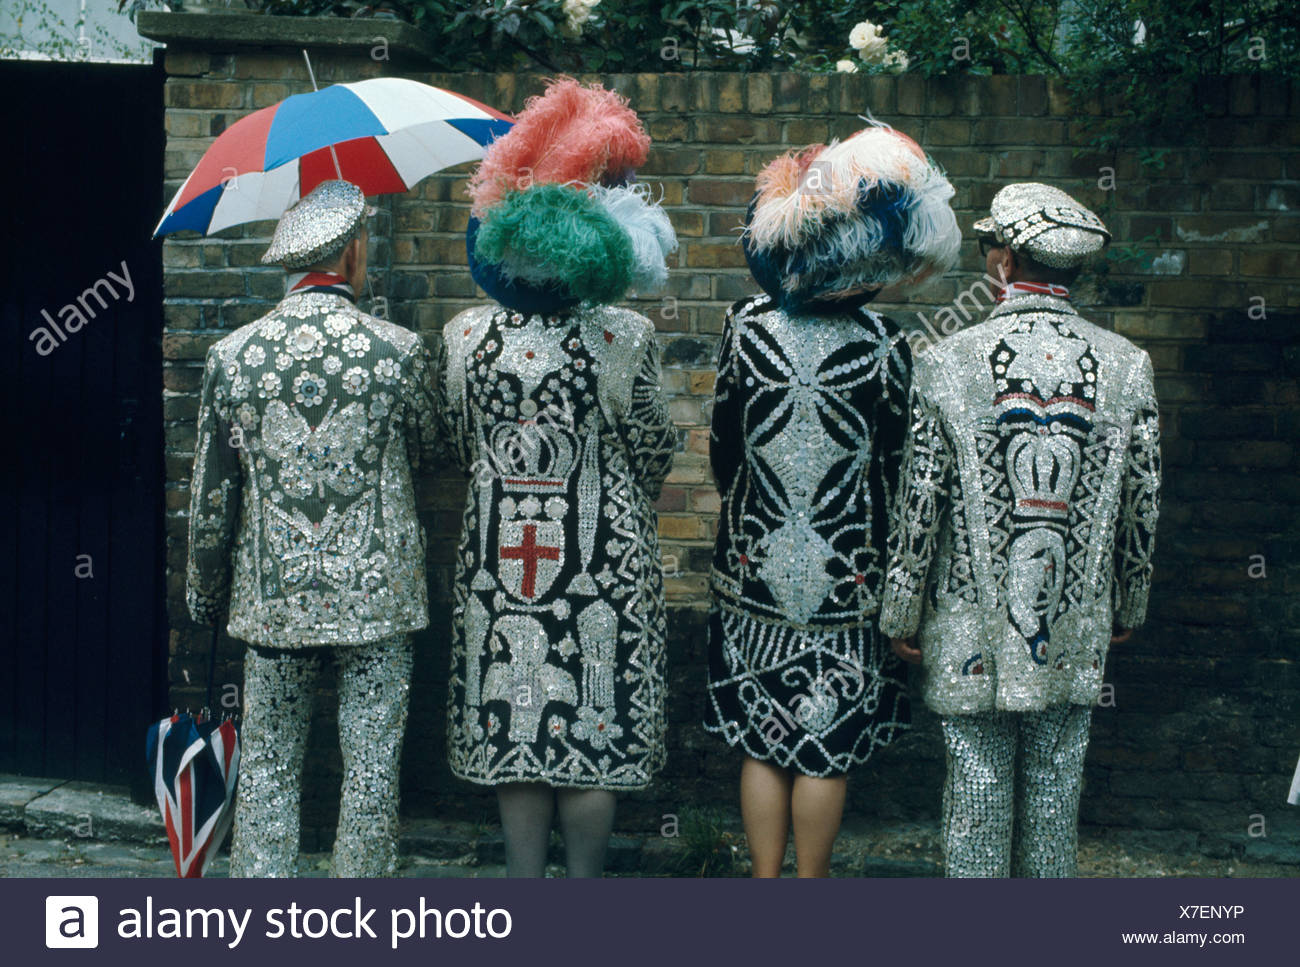 Pearly kings and queens showing the backs of their coats - Stock Image